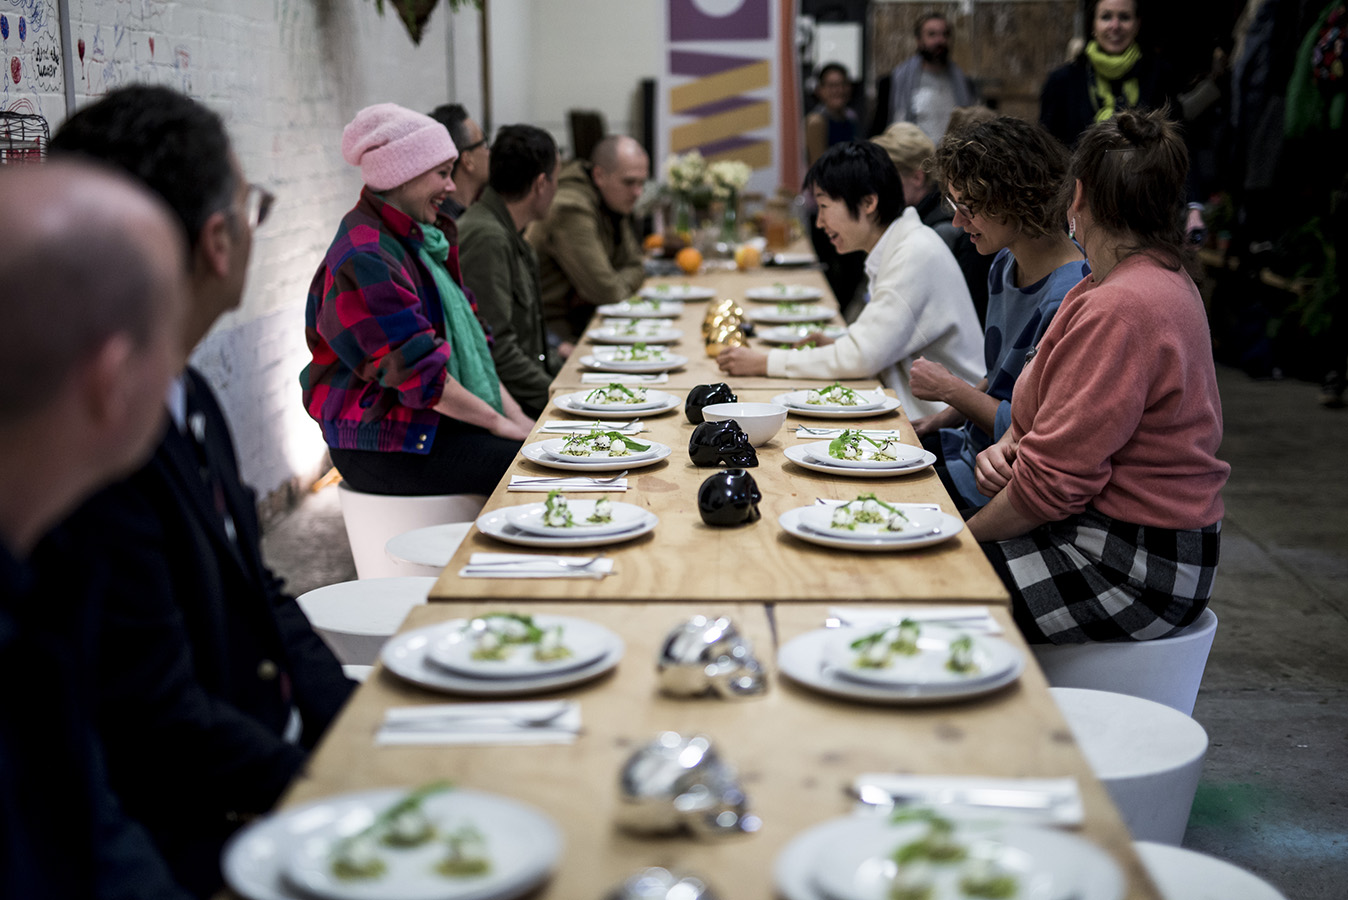 Biennial Lab artists and guests sit down to eat their meal, guided by Chef Peter Gunn. Photo: Pheobe Powell.